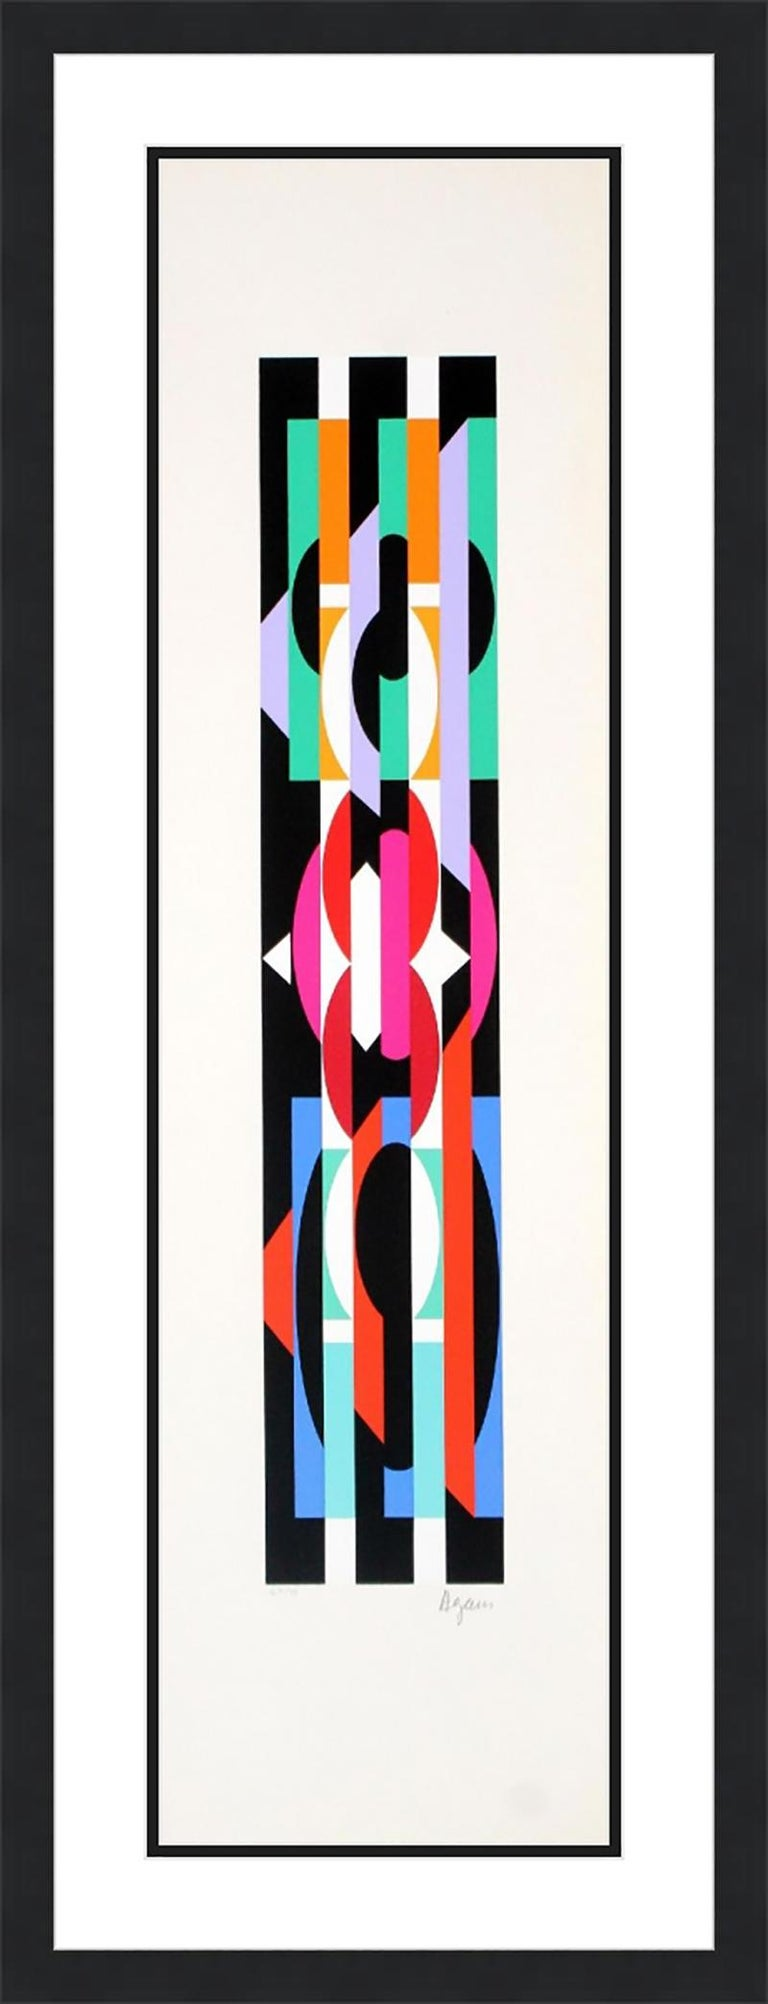 YAACOV AGAM  UNTITLED 6 FROM THE +-X9 SUITE  SIGNED AND NUMBERED - Print by Agam Yaacov